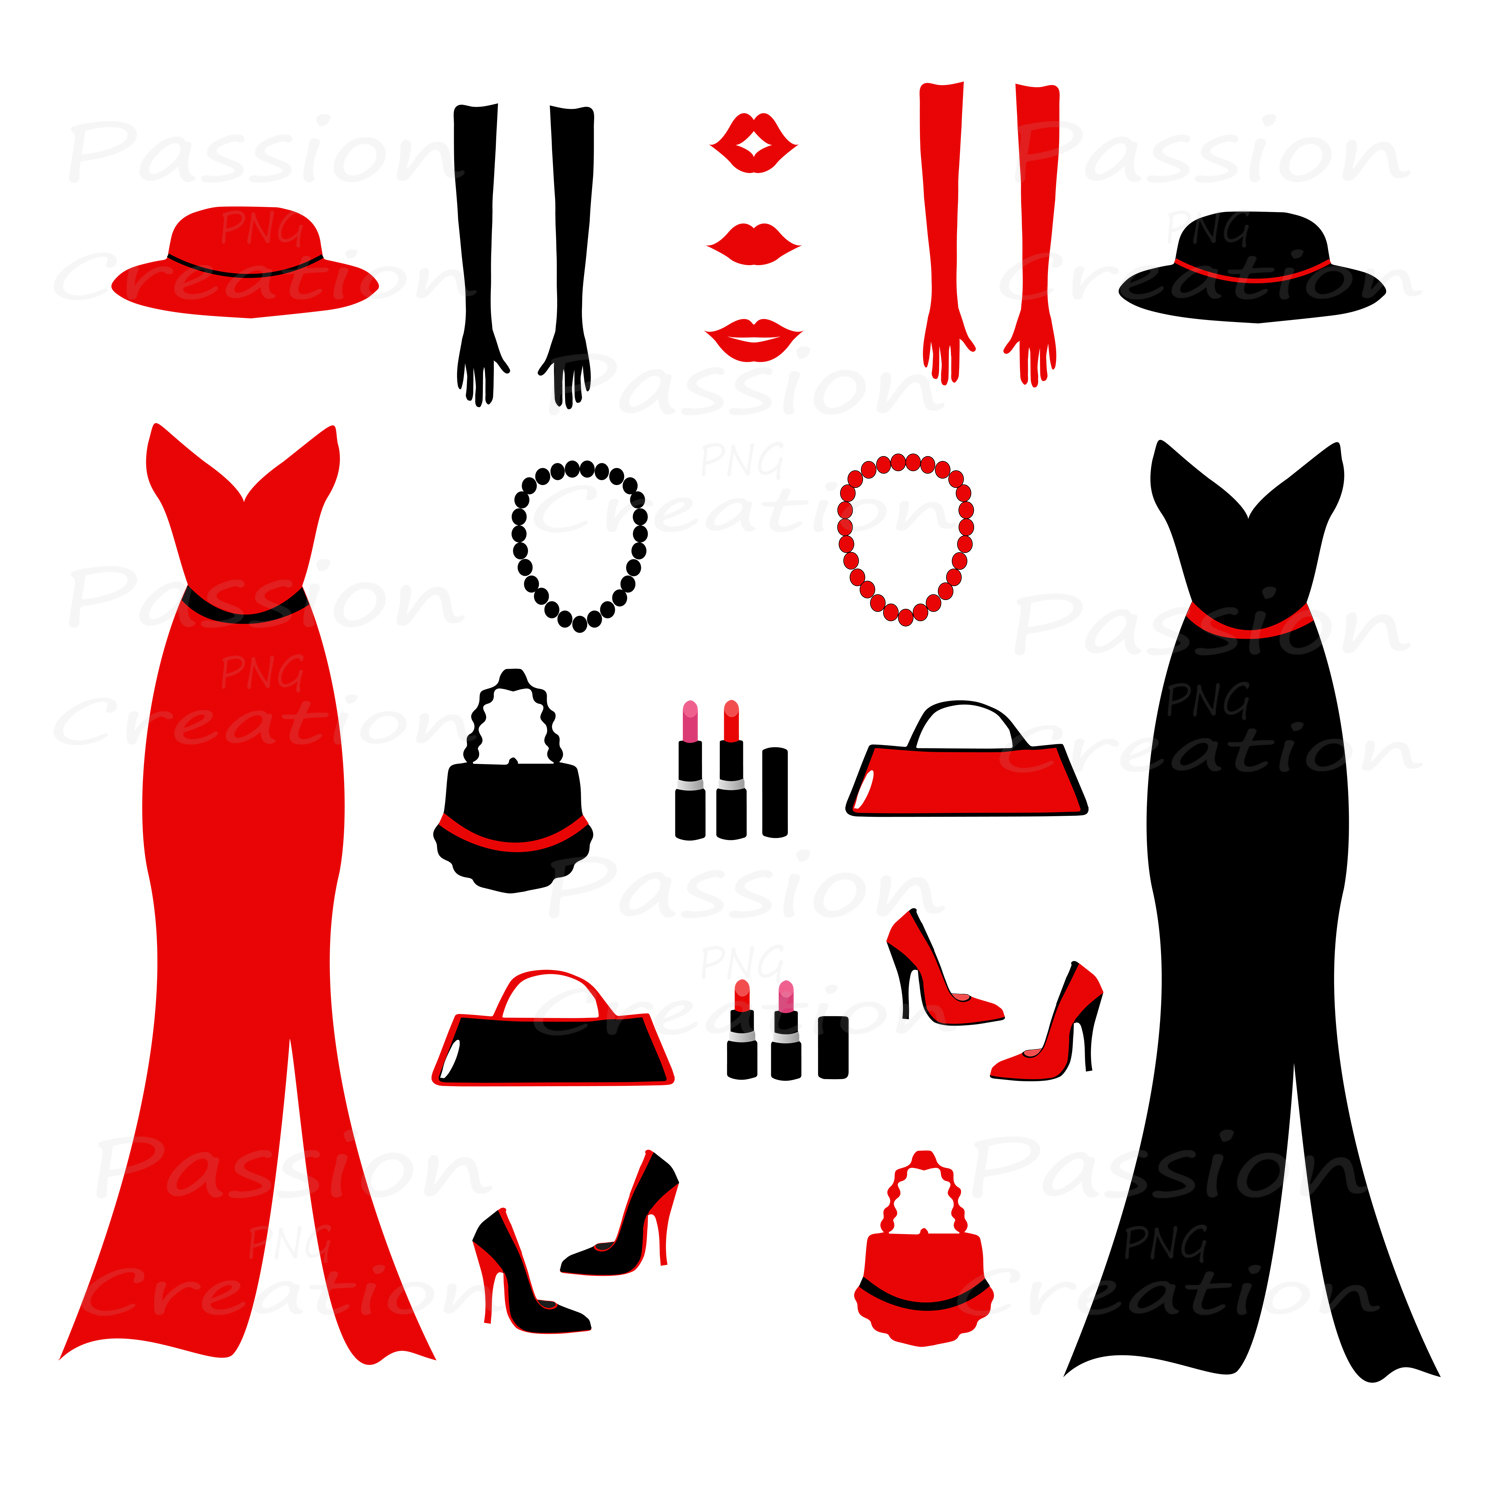 Red Dress clipart party dress Clip Shoes fashion on Art